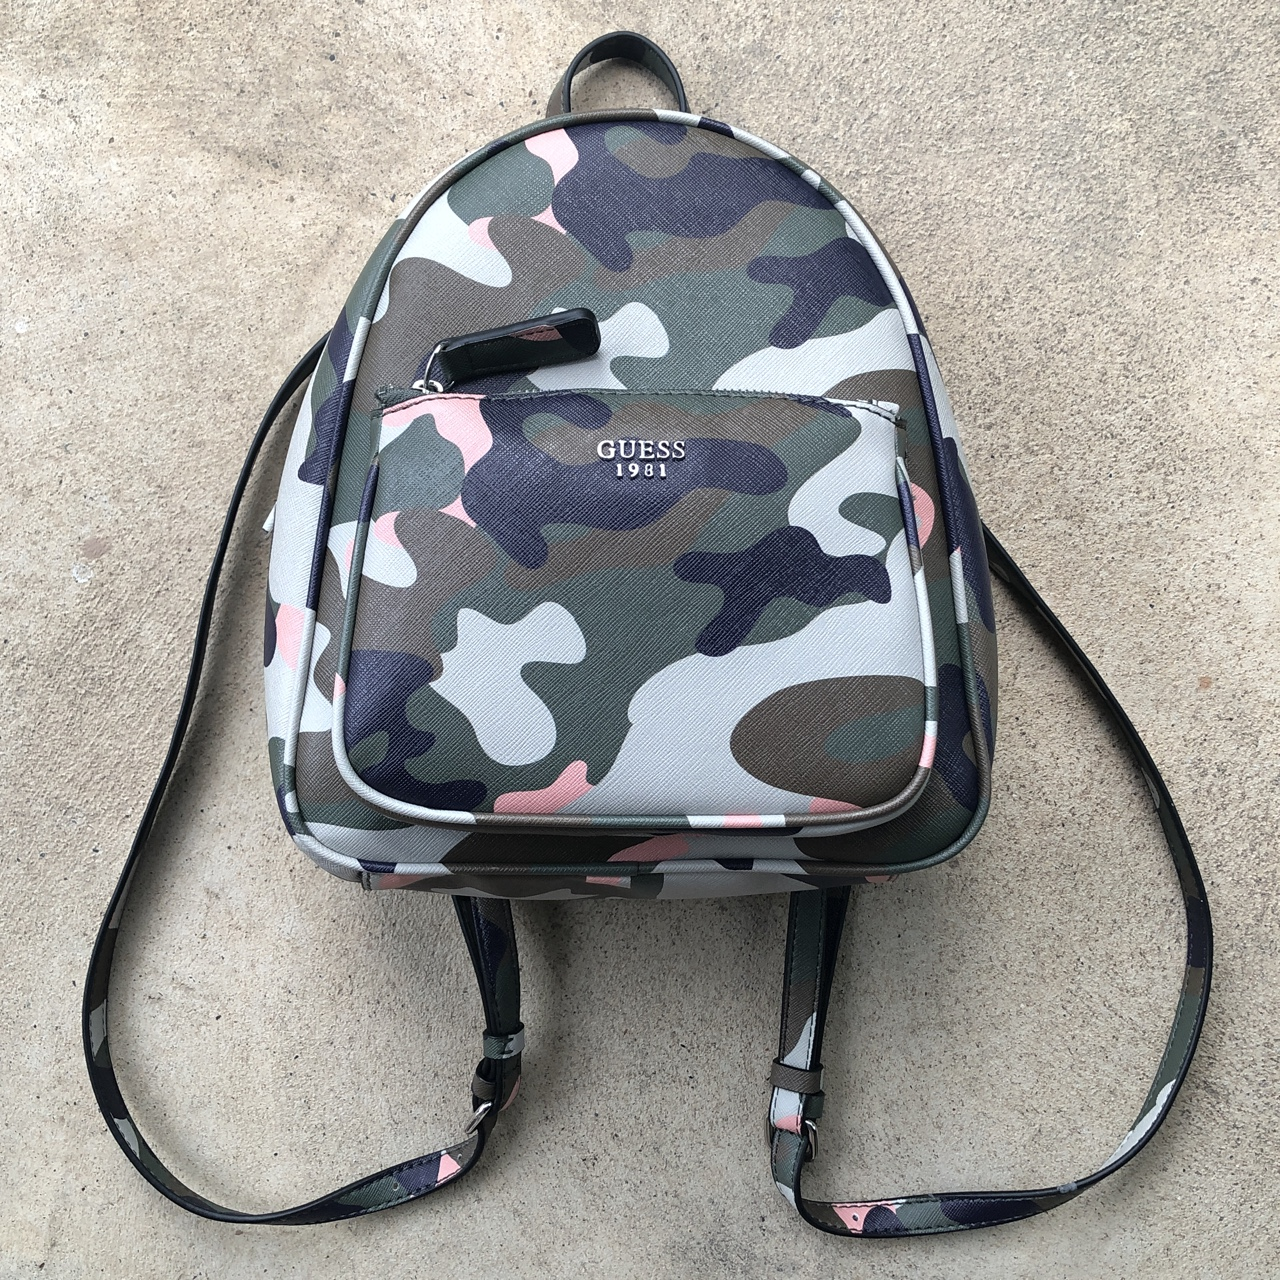 Rare Guess Jeans Camo Camouflage Pink Green Black Depop